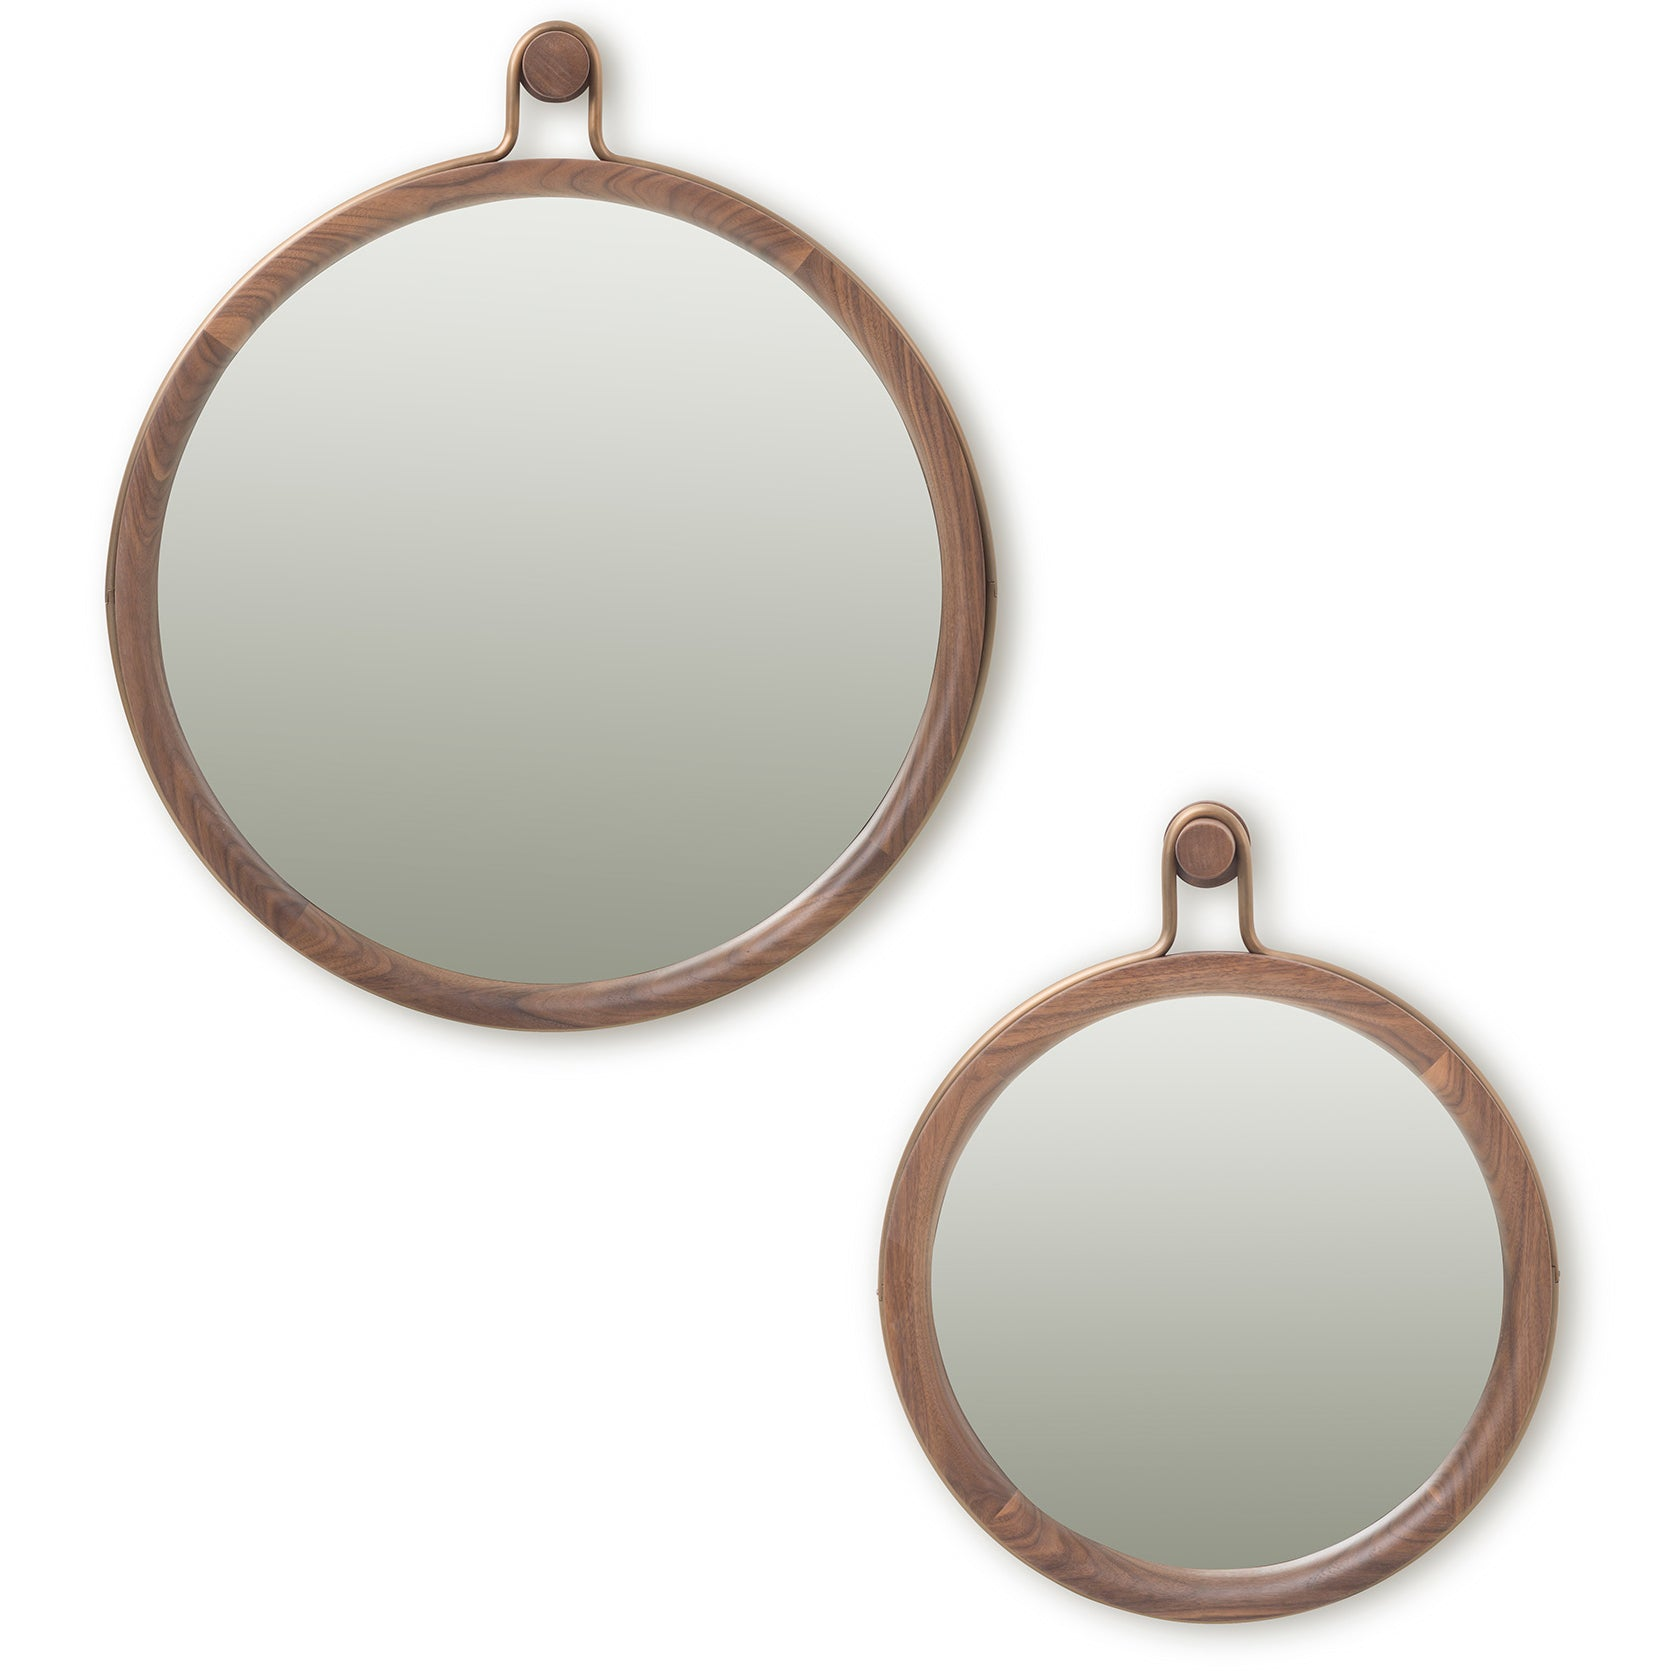 Utility Round Mirror: Large + Small + Natural Walnut